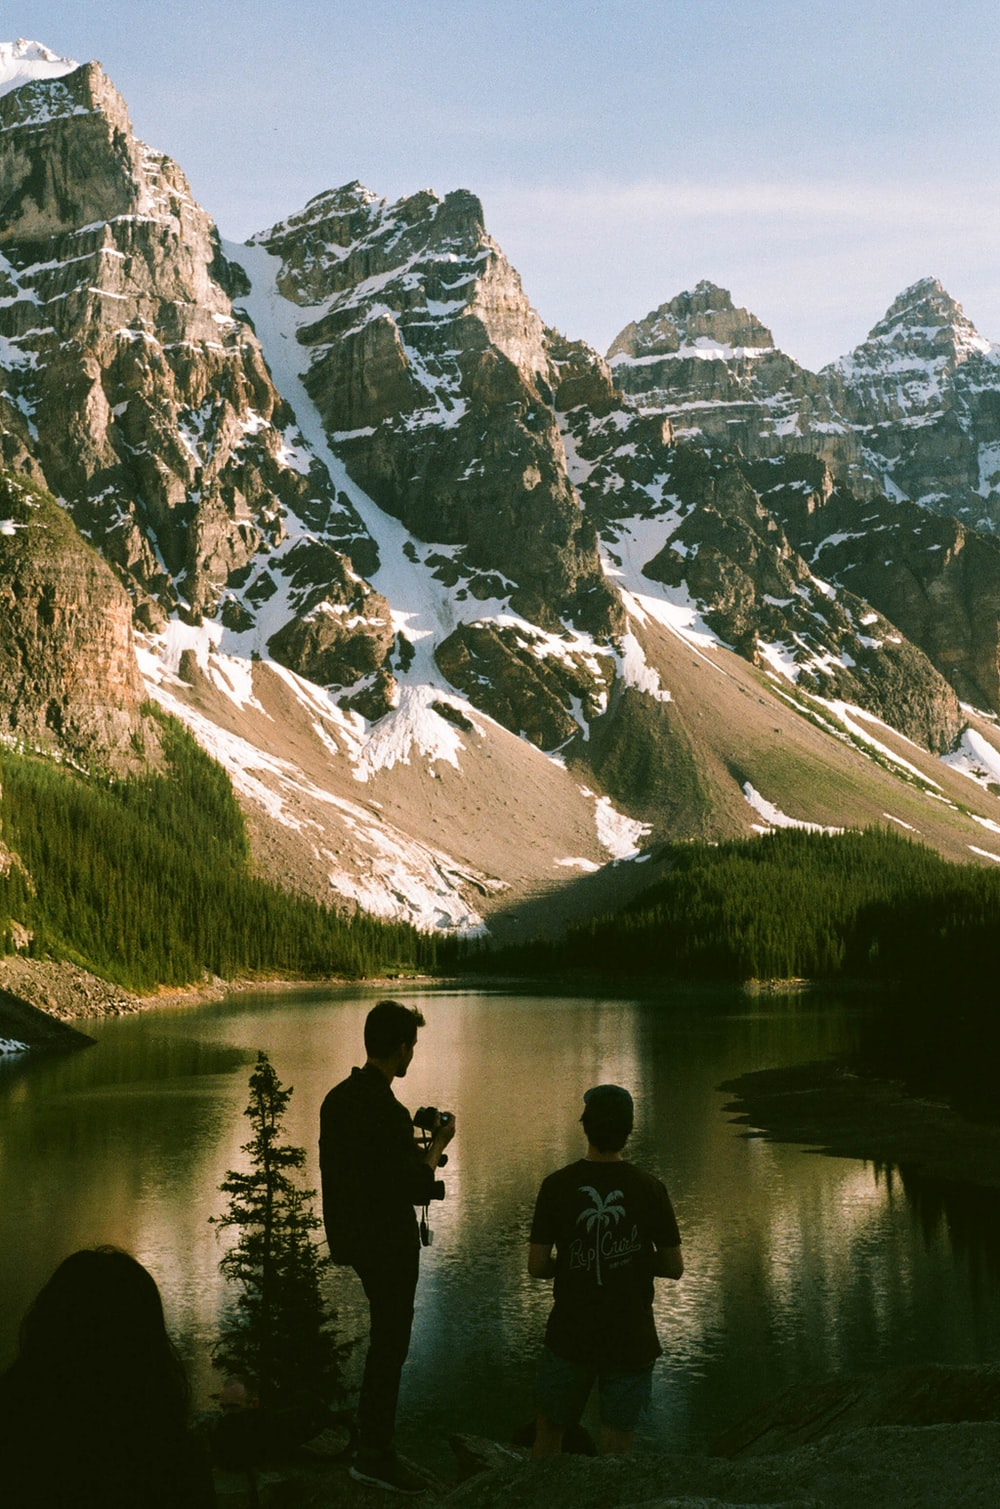 two men standing near body of water and mountain